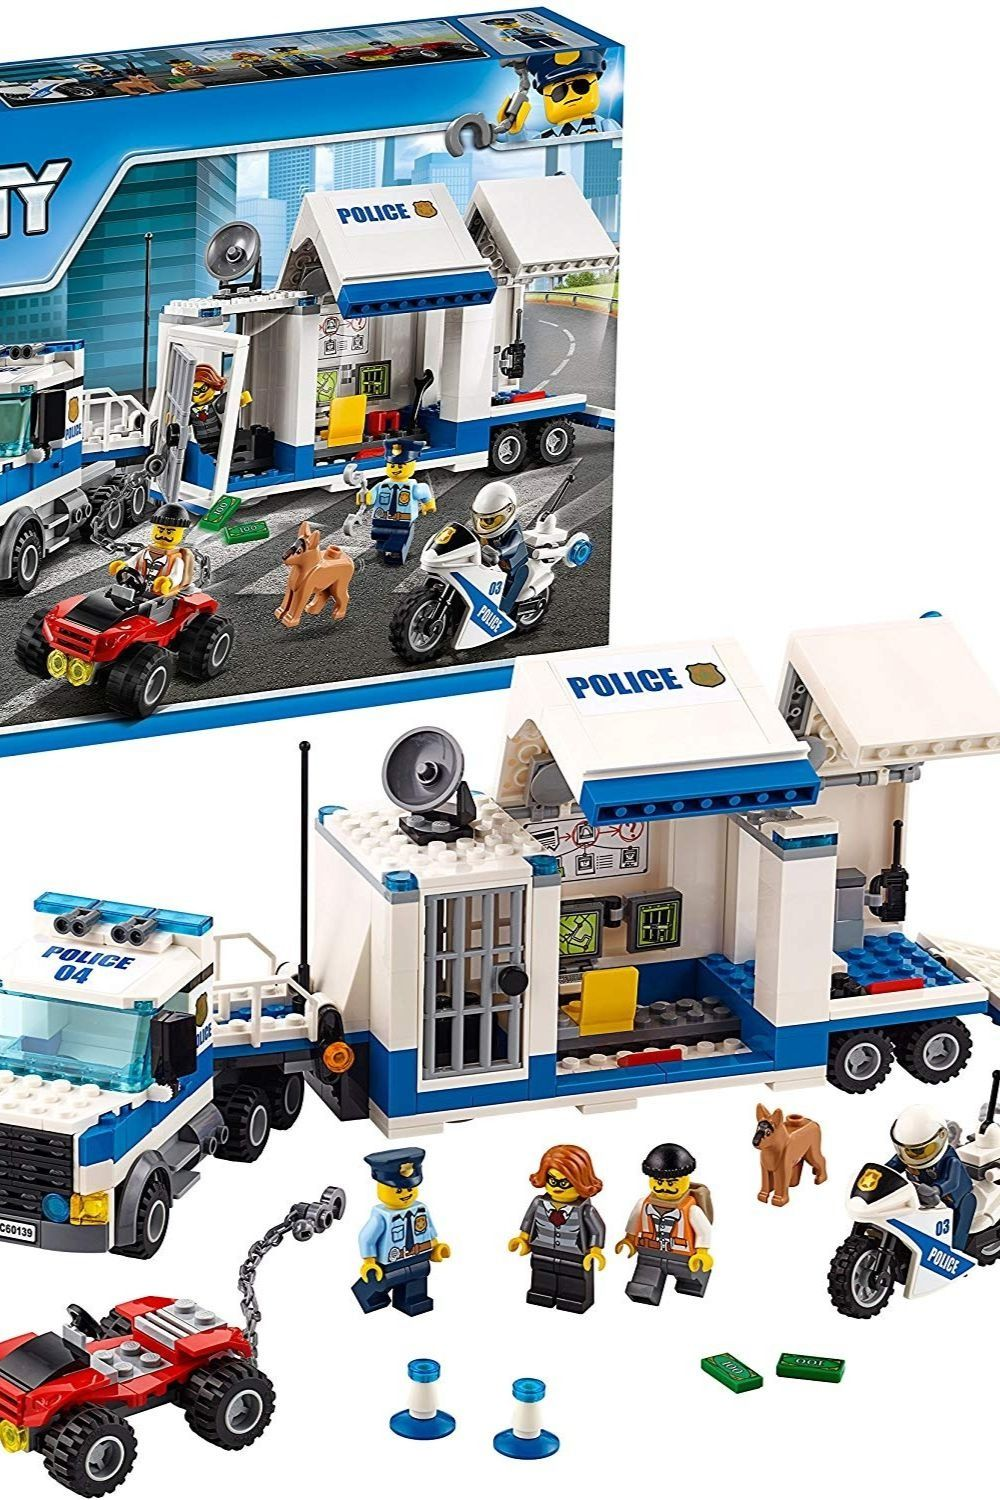 Lego City Police Mobile Command Center Truck 60139 Building Toy Action Cop Motorbike And Atv Play Set For Boys And Gi 2020 Lego City Police Lego City Building Toys